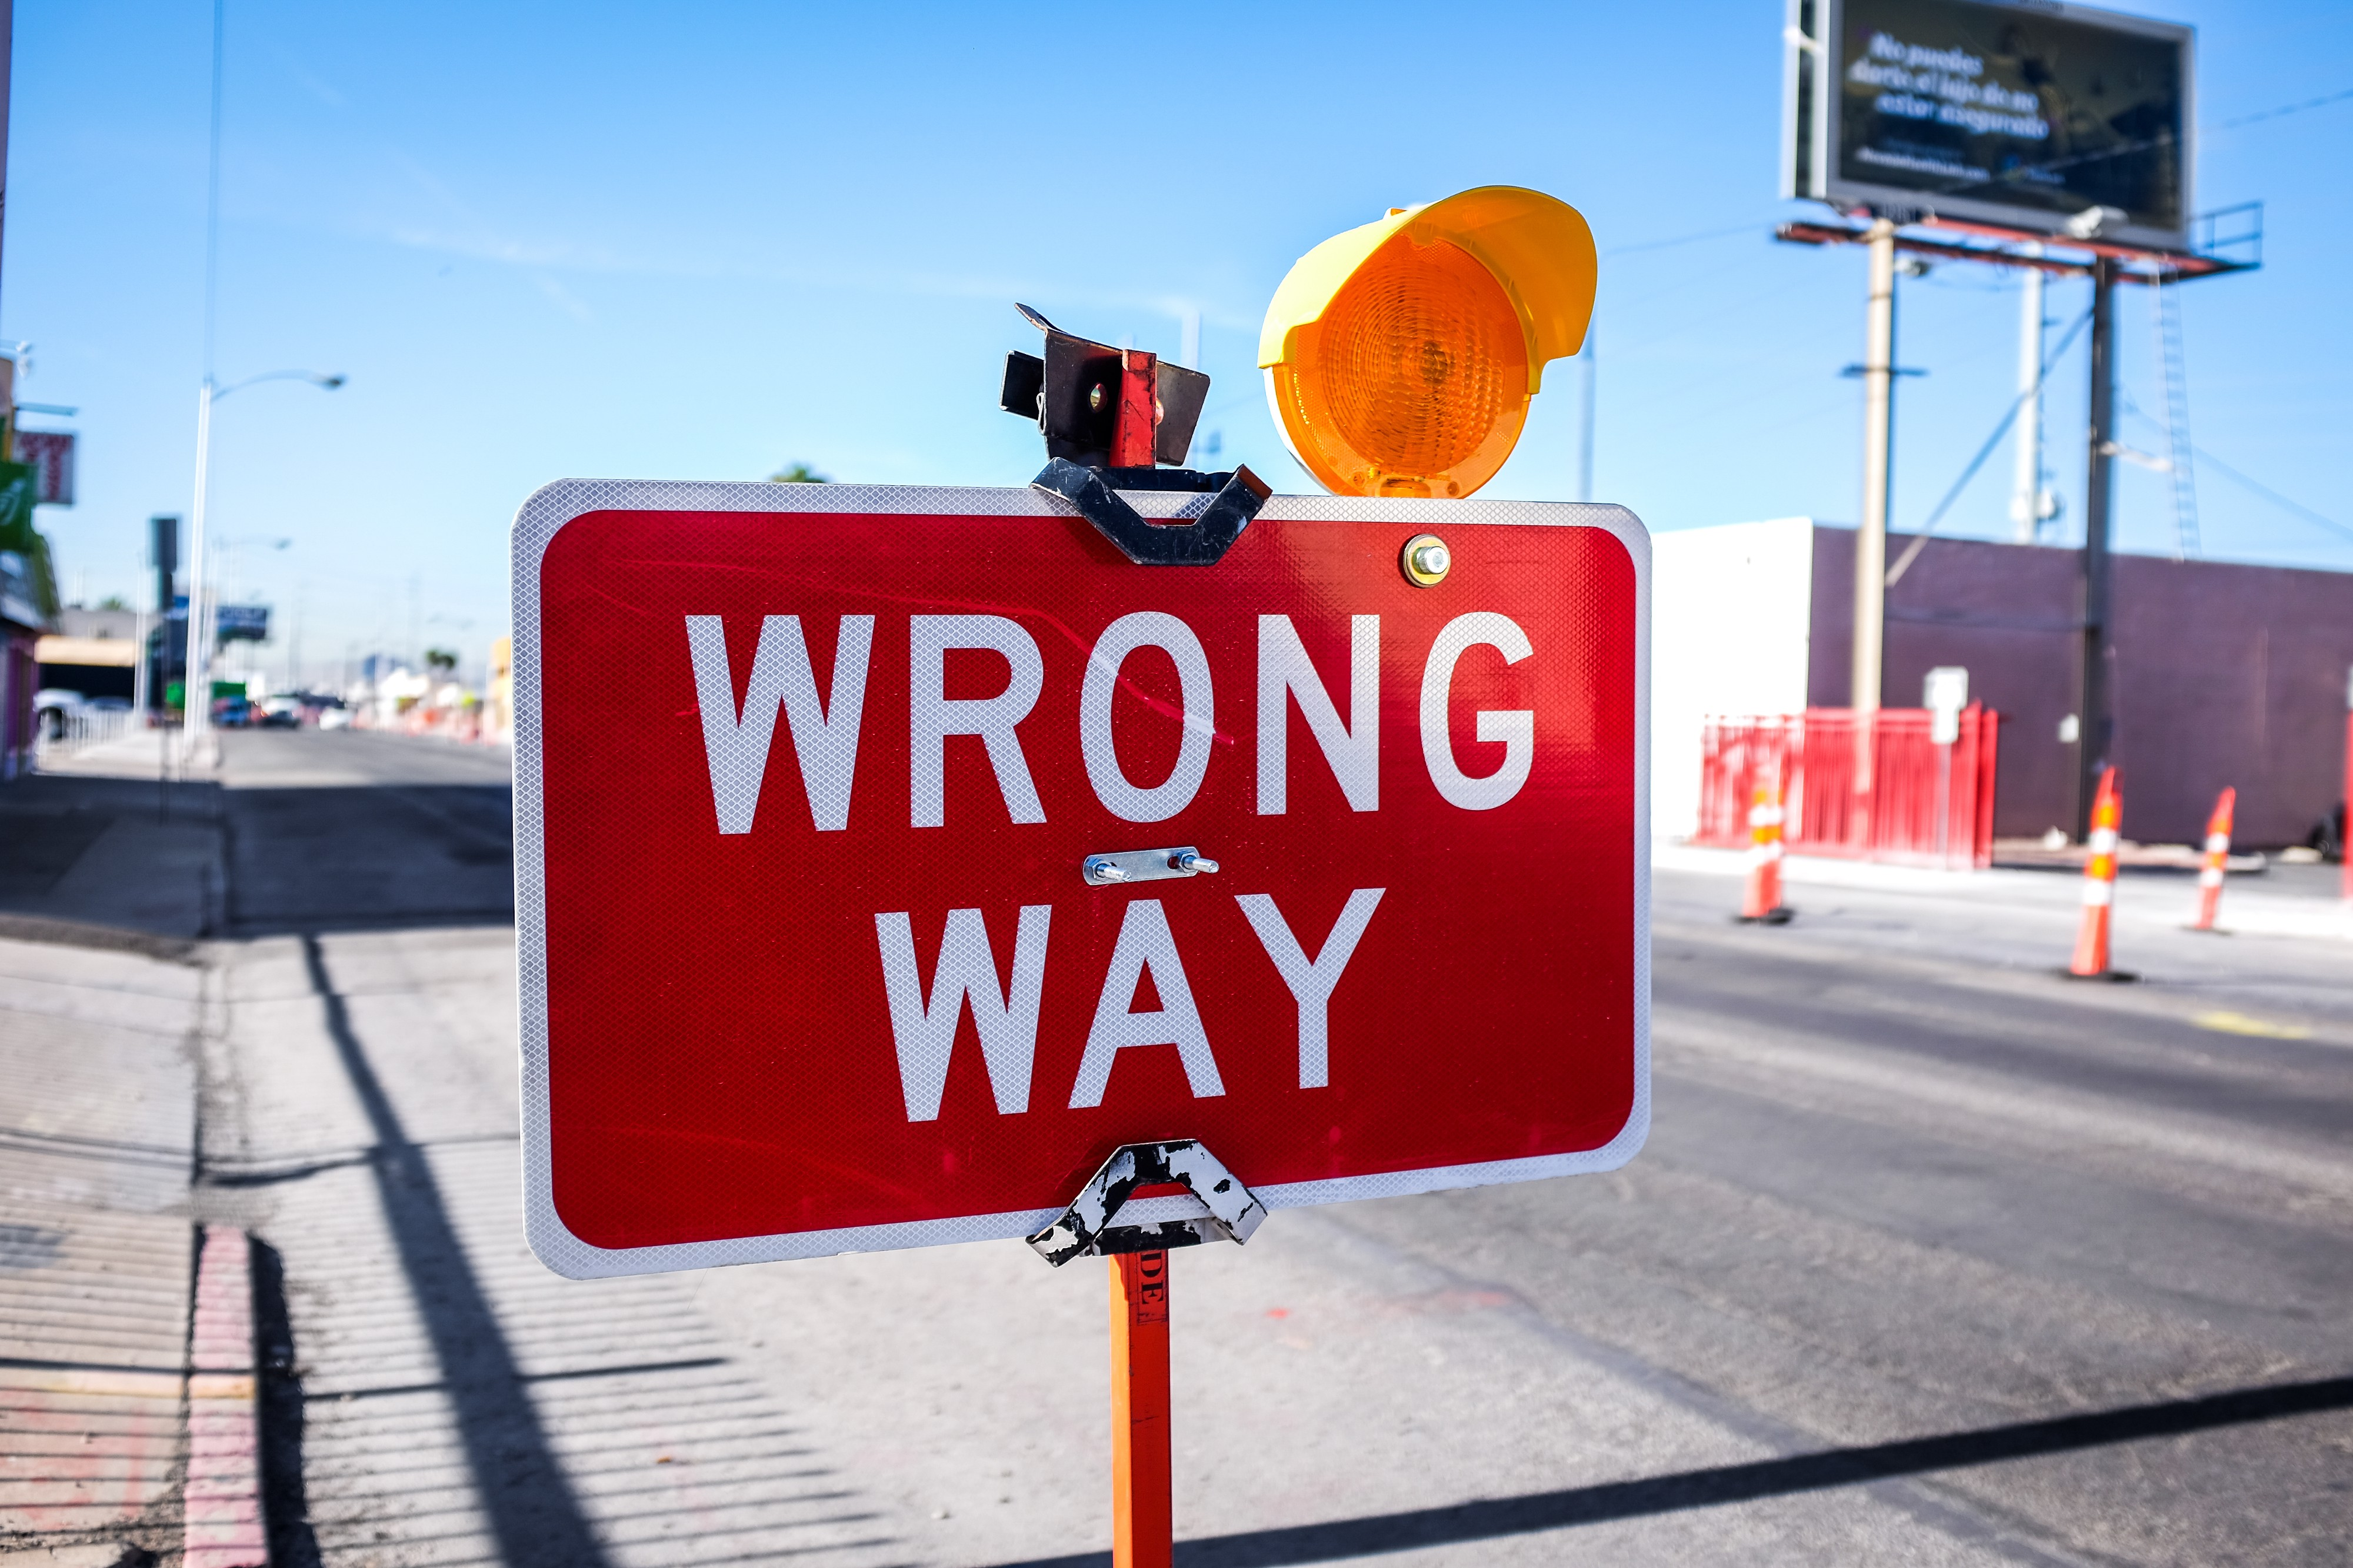 Sign with the wrong way direction